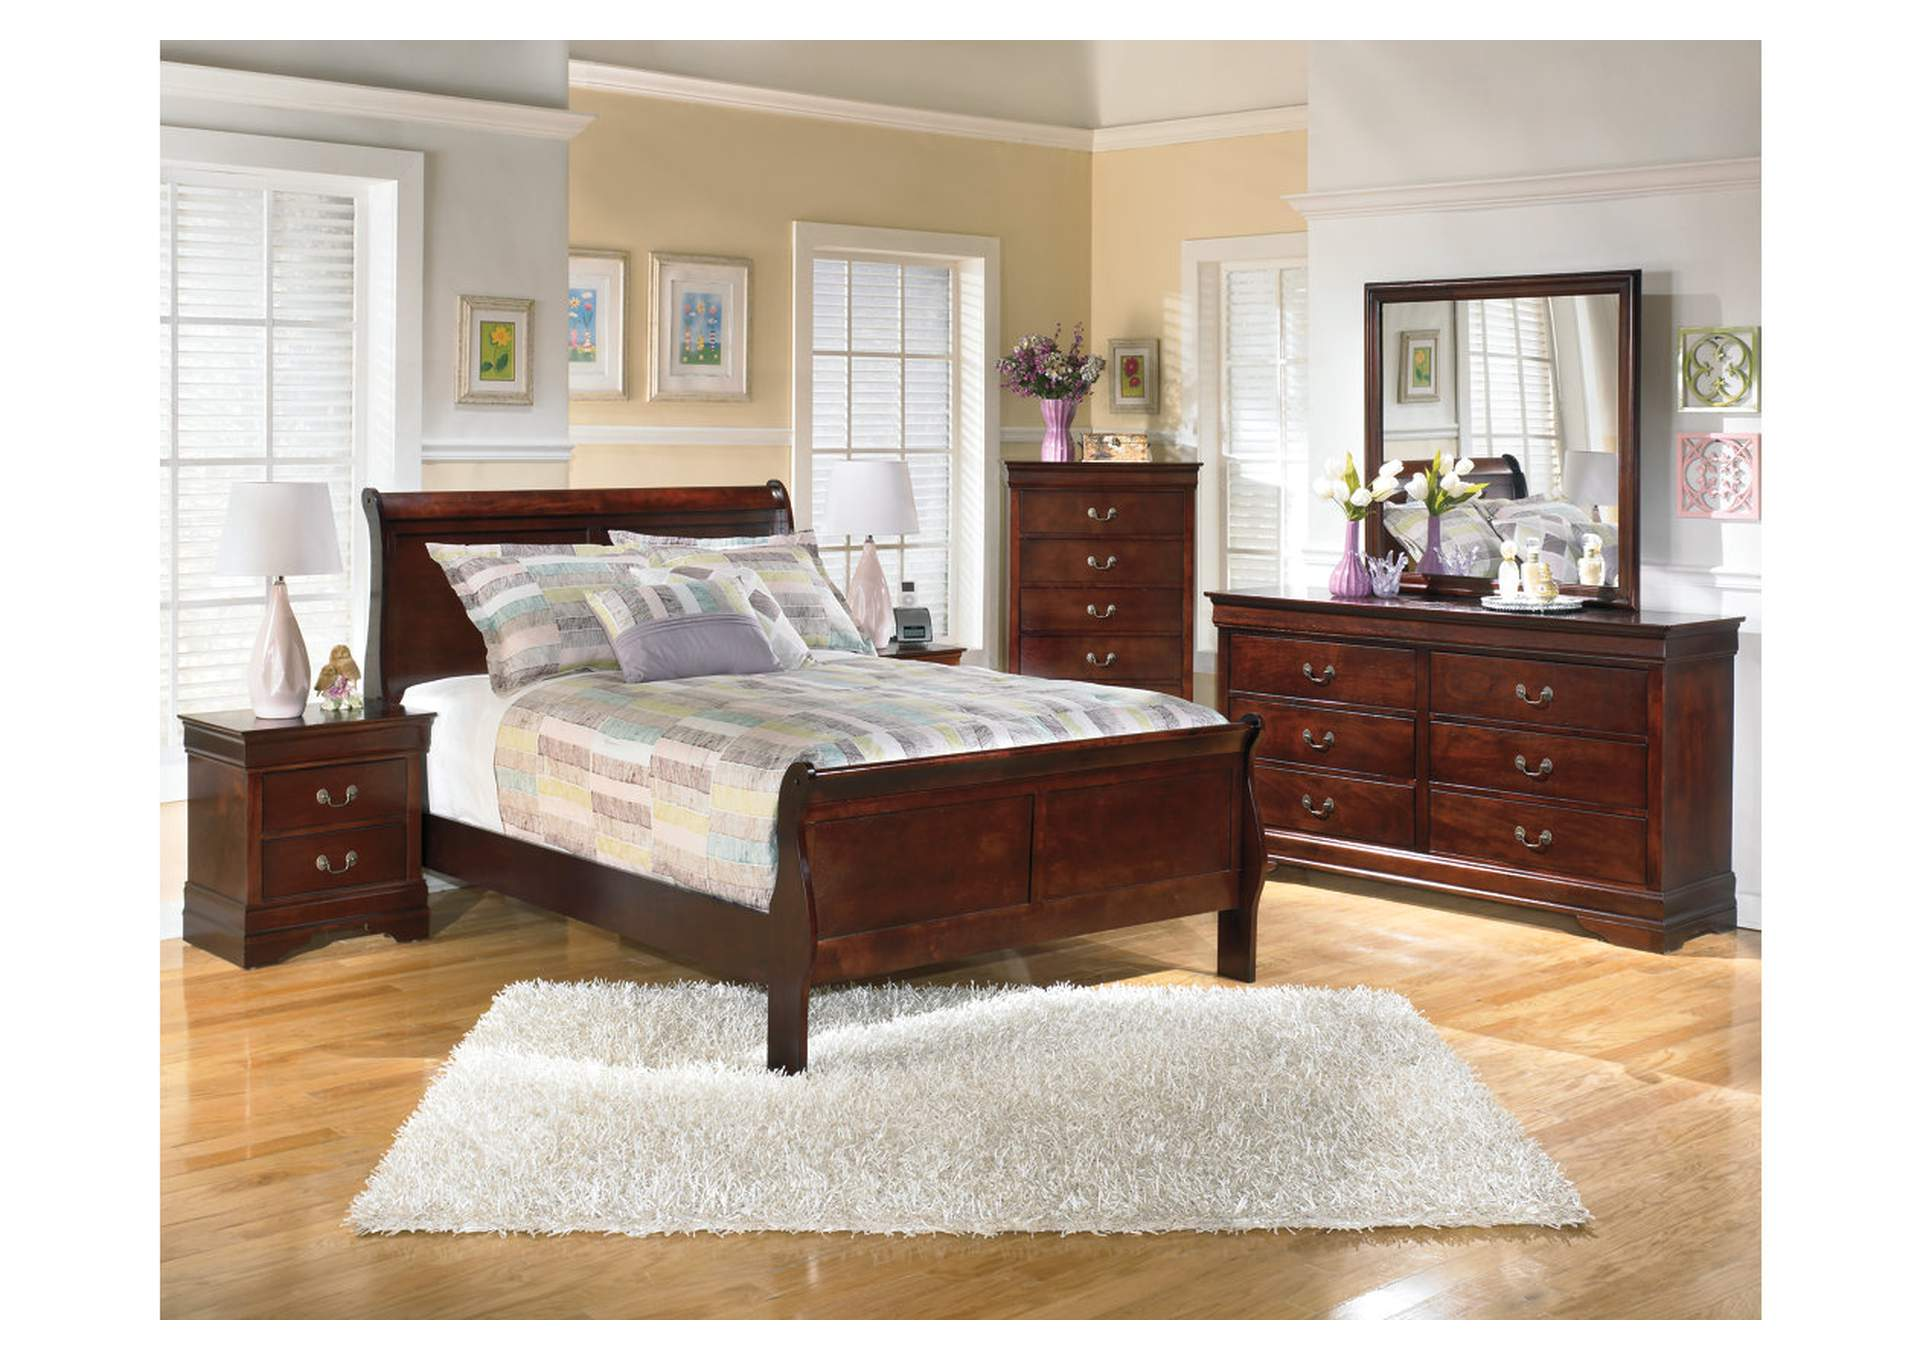 Alisdair Full Sleigh Bed w/Dresser, Mirror & Drawer Chest,Signature Design by Ashley